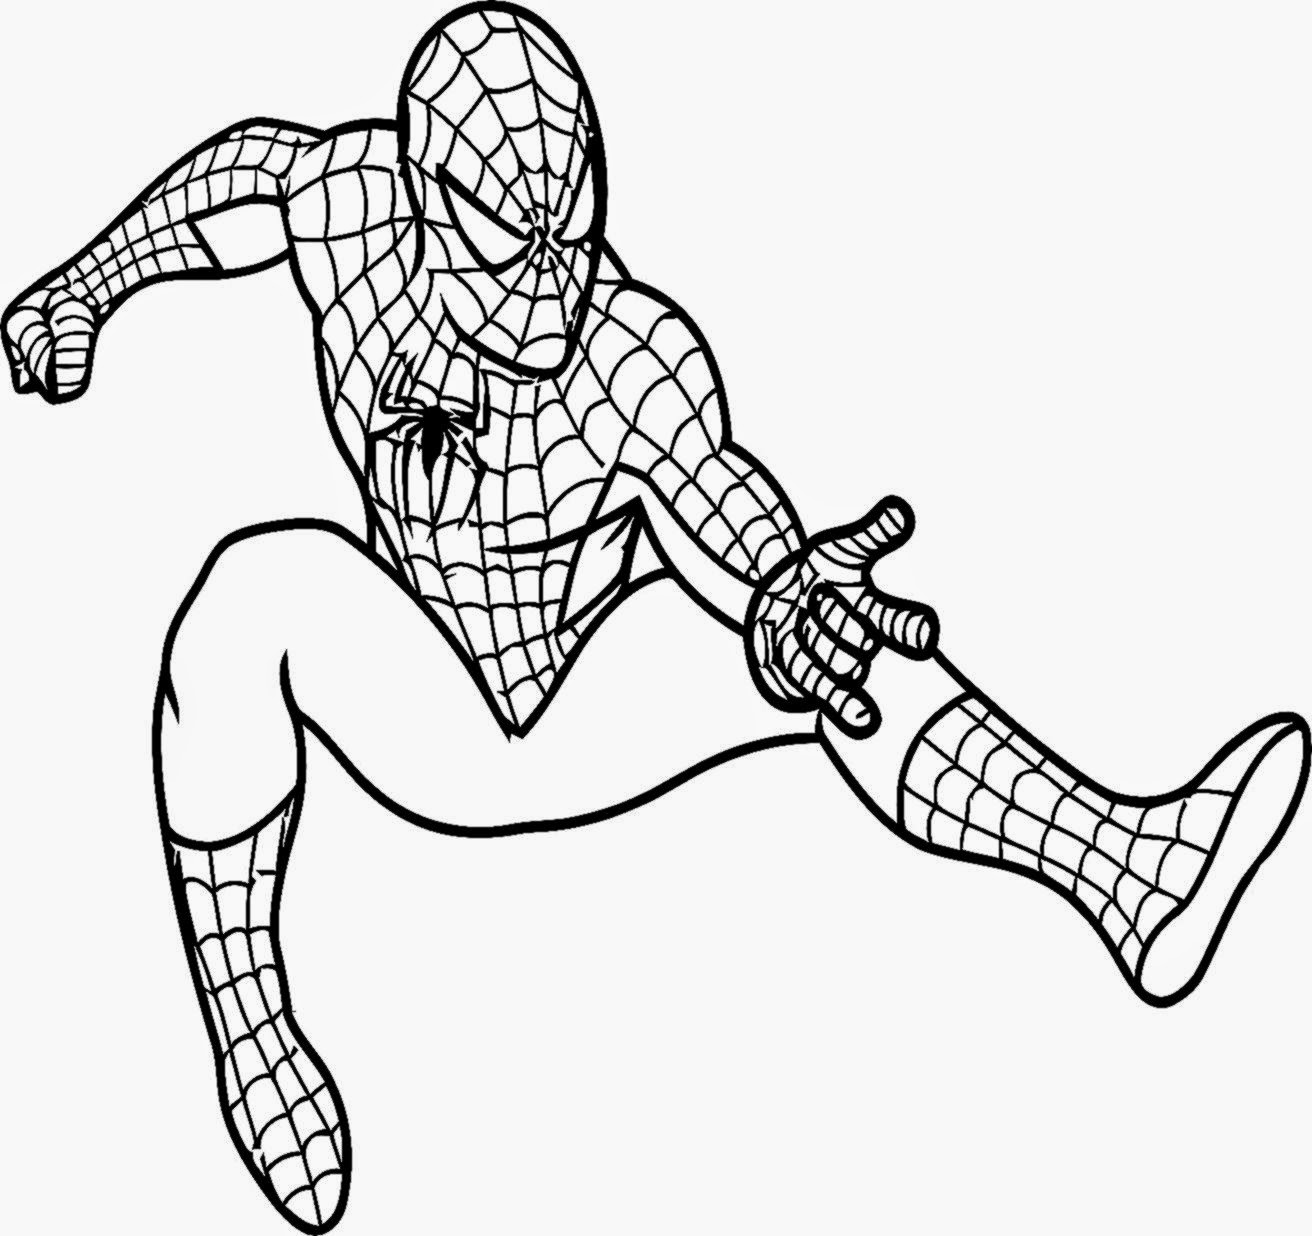 Coloring Pages Spiderman Printable Coloring Pages spiderman printable coloring pages eassume com 12 pictures print color craft